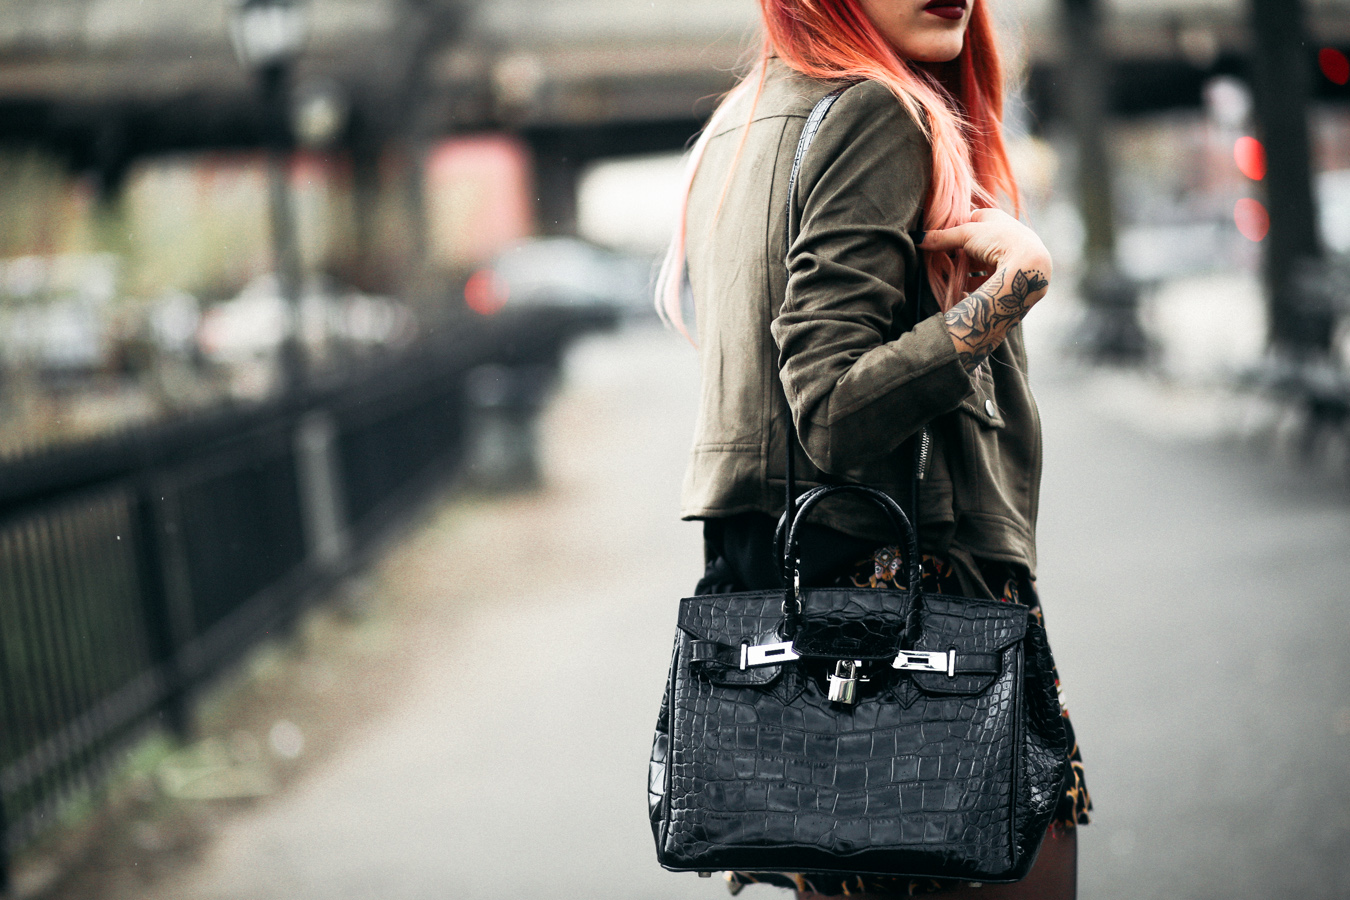 Le Happy wearing Teddy Blake croc bag